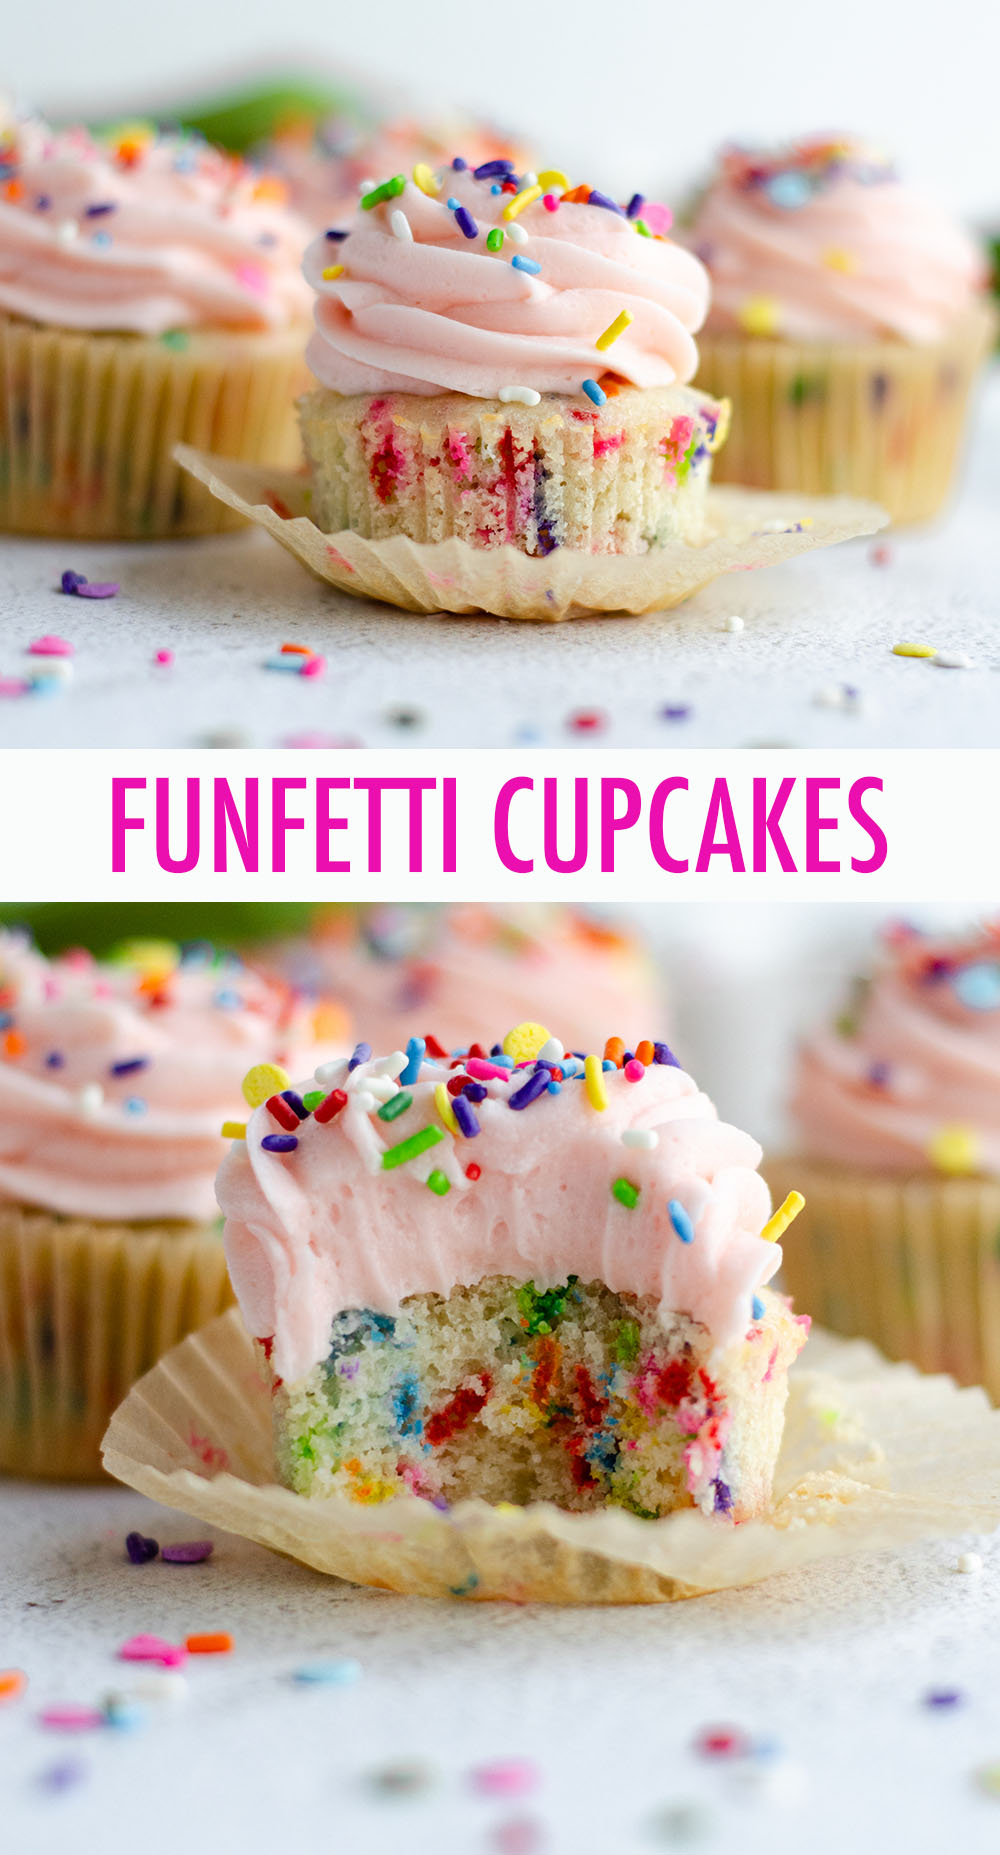 Sprinkle-speckled cupcakes that taste BETTER than the ones from the box, topped with creamy, sprinkle-filled vanilla buttercream. Ditch the mix and make your own funfetti cupcakes from scratch!